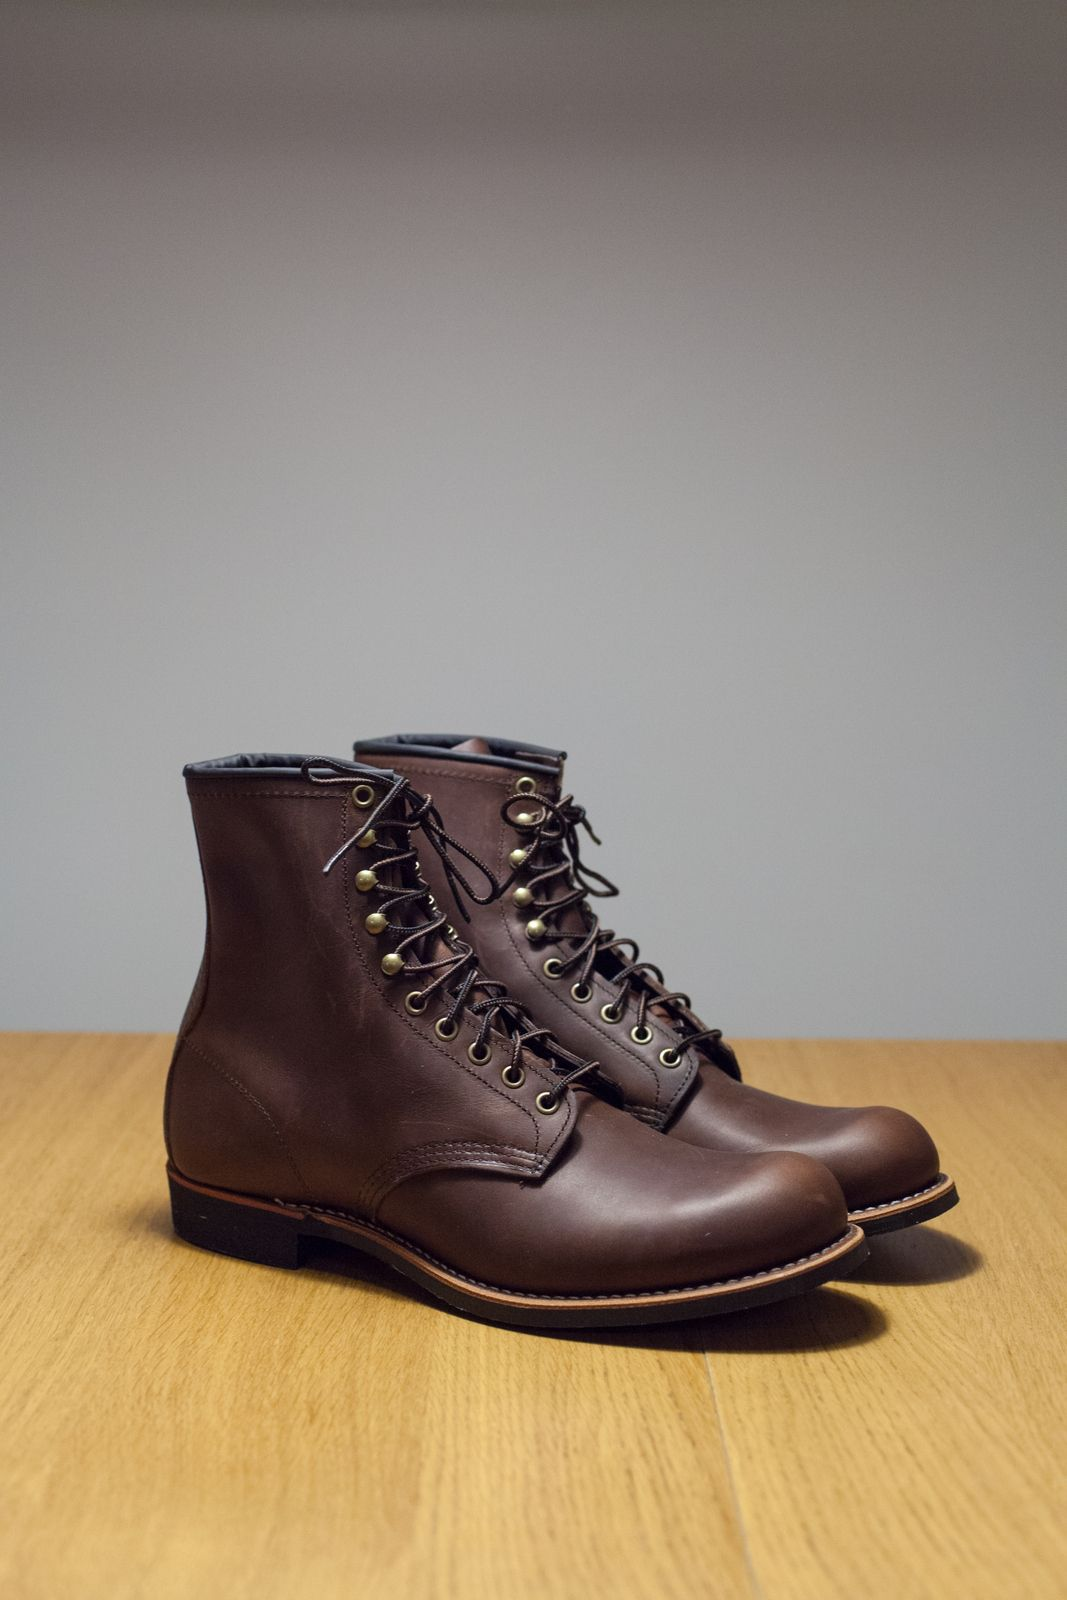 54336ad30250 Red Wing Shoes Amber Harvester style no. 2943 Size 11 US 44.5 EU (D Width